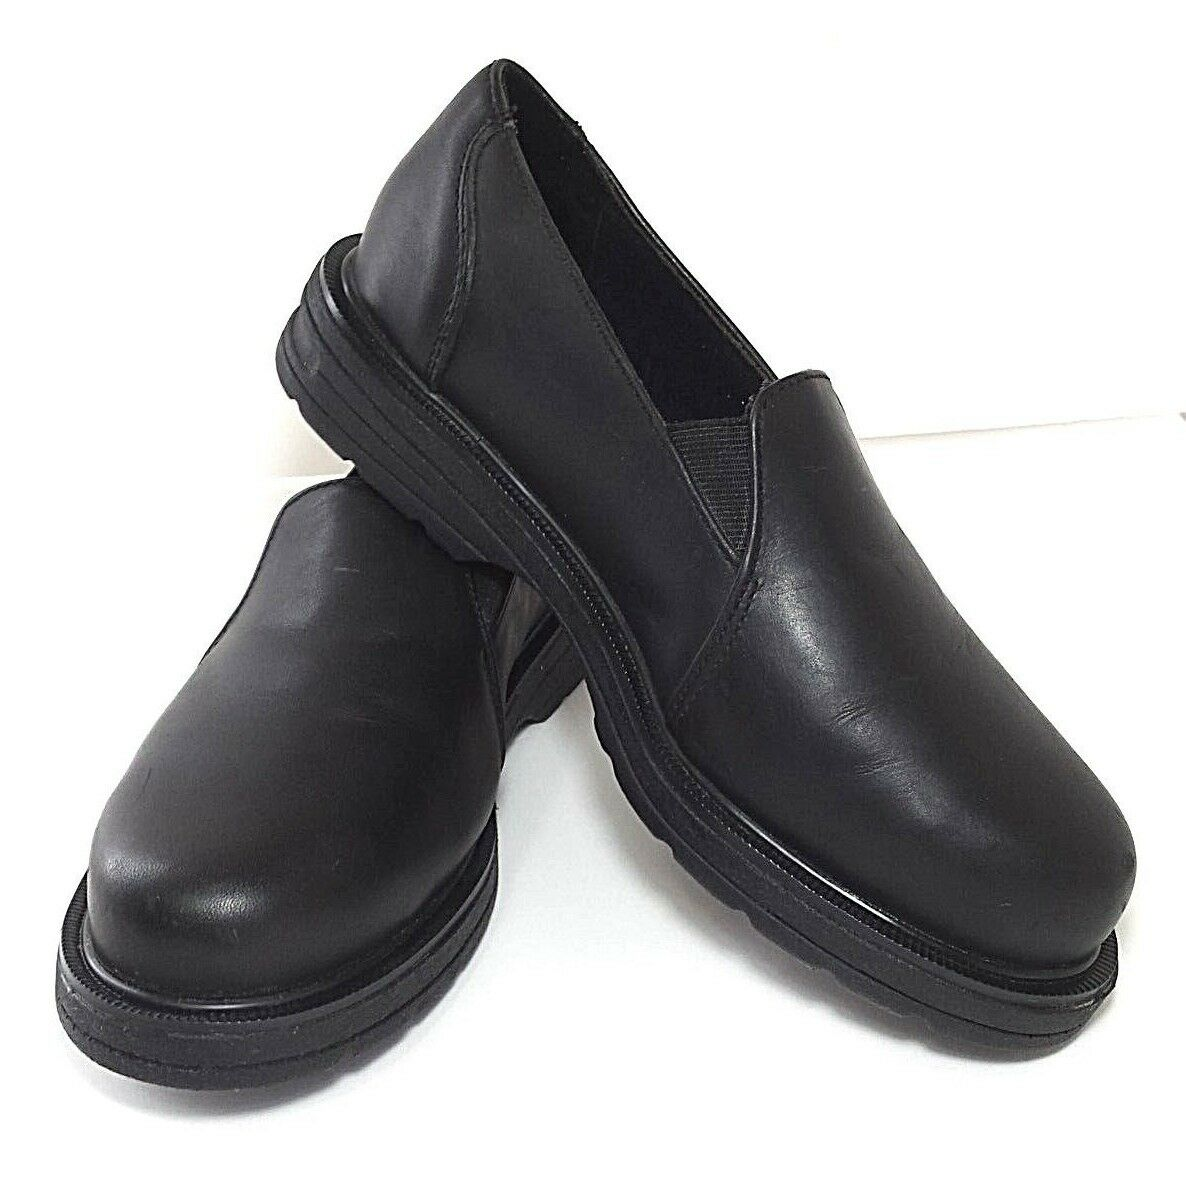 Hush Puppies Professionals Composite Toe Work Shoes Size 7 Black Leather Slip On